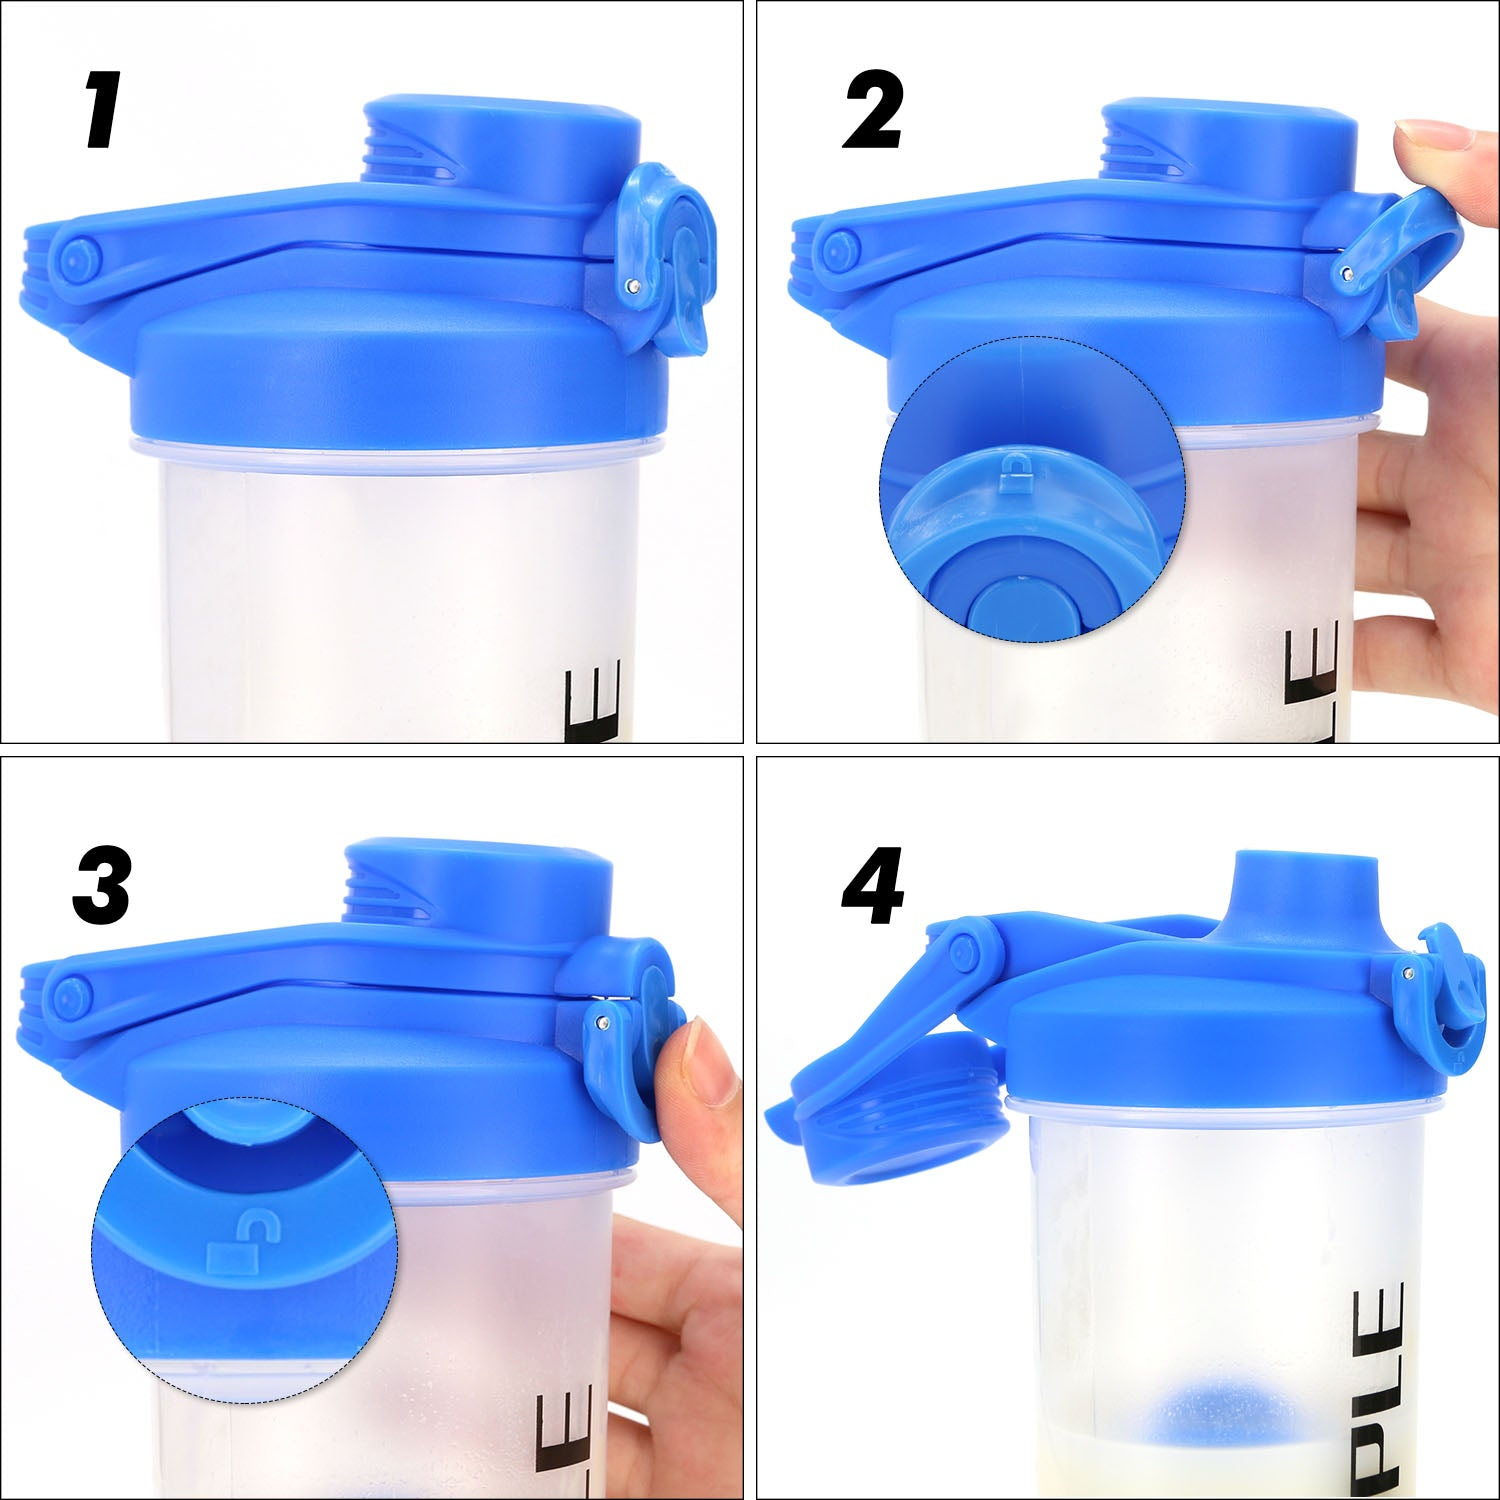 Hoople 24 OZ Shaker Bottle Protein Powder Shake Blender Gym Smoothie Cup, BPA Free, Auto-Flip Leak-Proof Lid, Handle with Ball Included - Blue